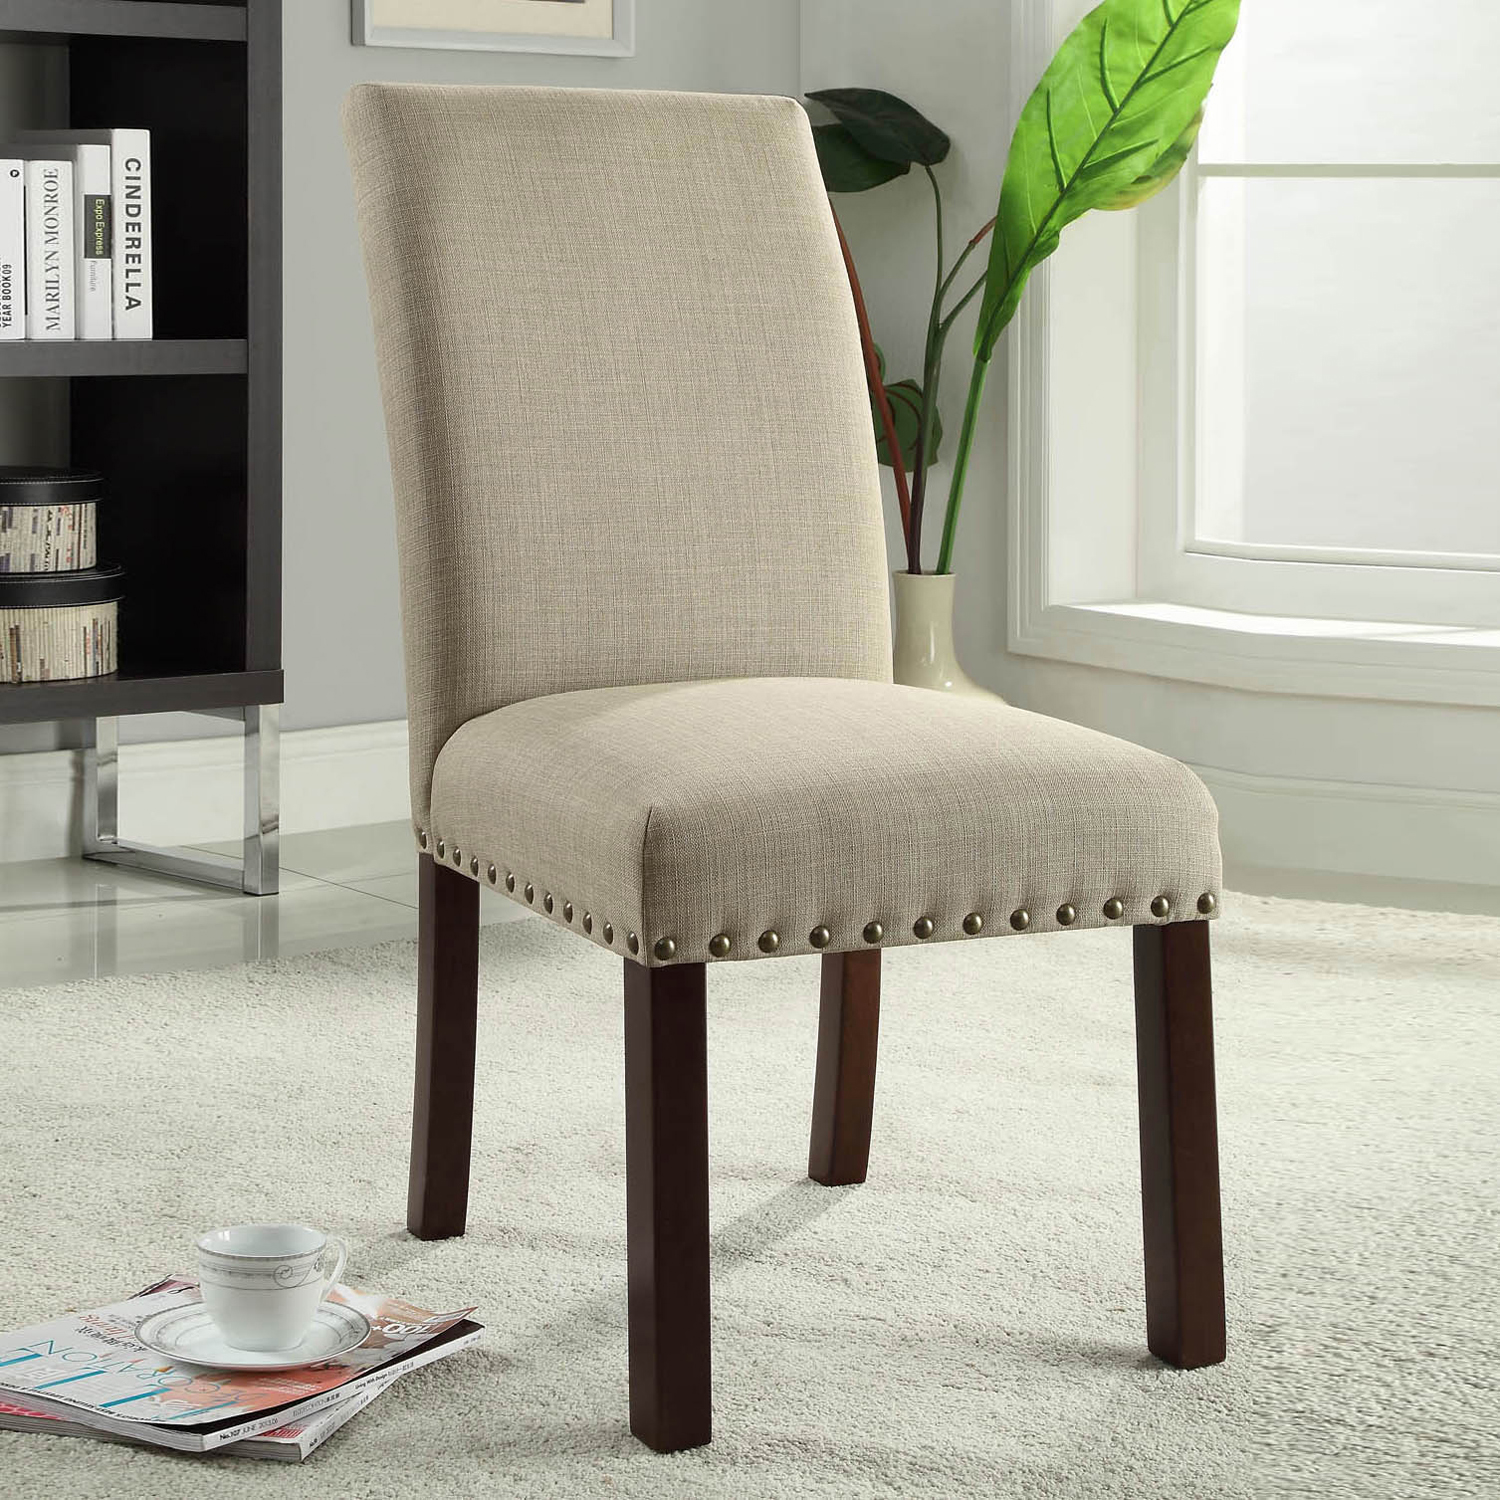 Linen Tan Nailhead Trip Parsons Dining Chairs Set of 2